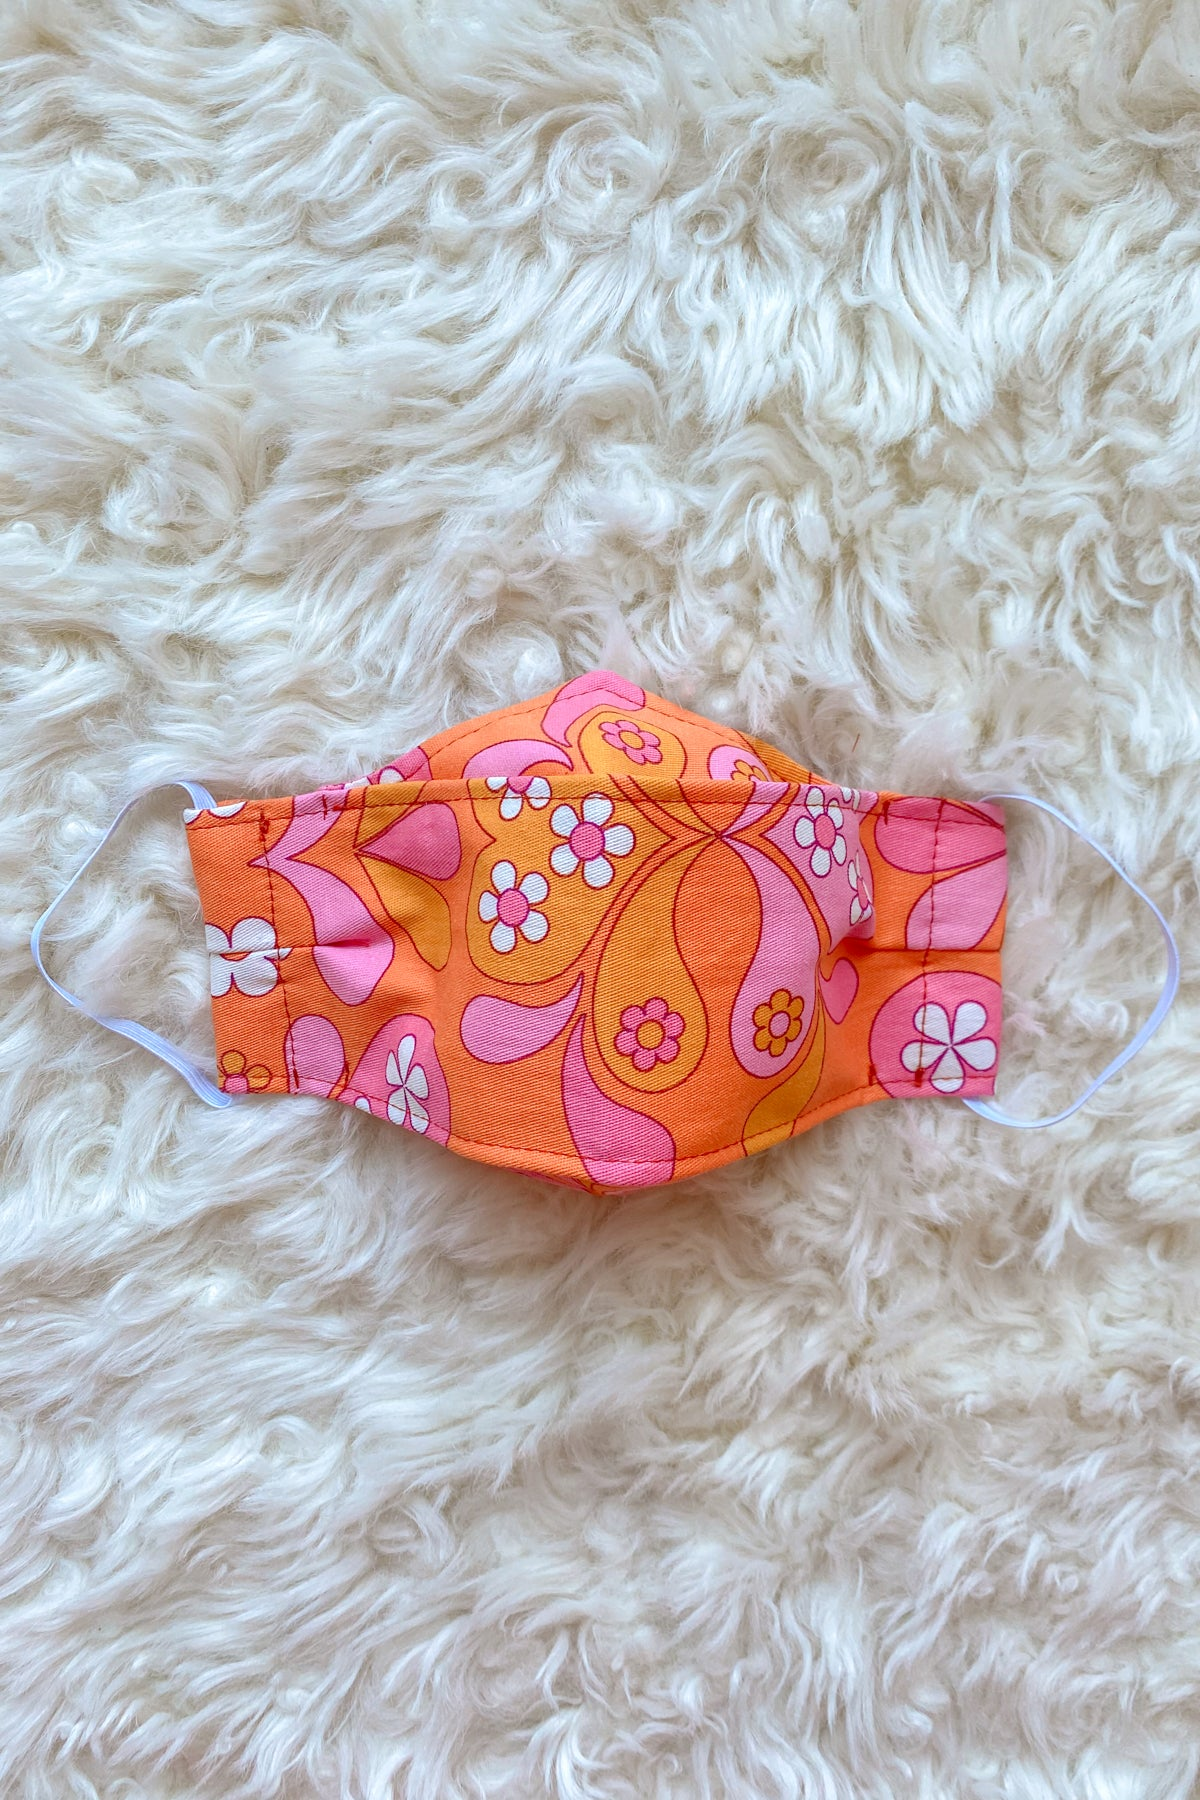 Clementine Daisy Face Mask + Donation